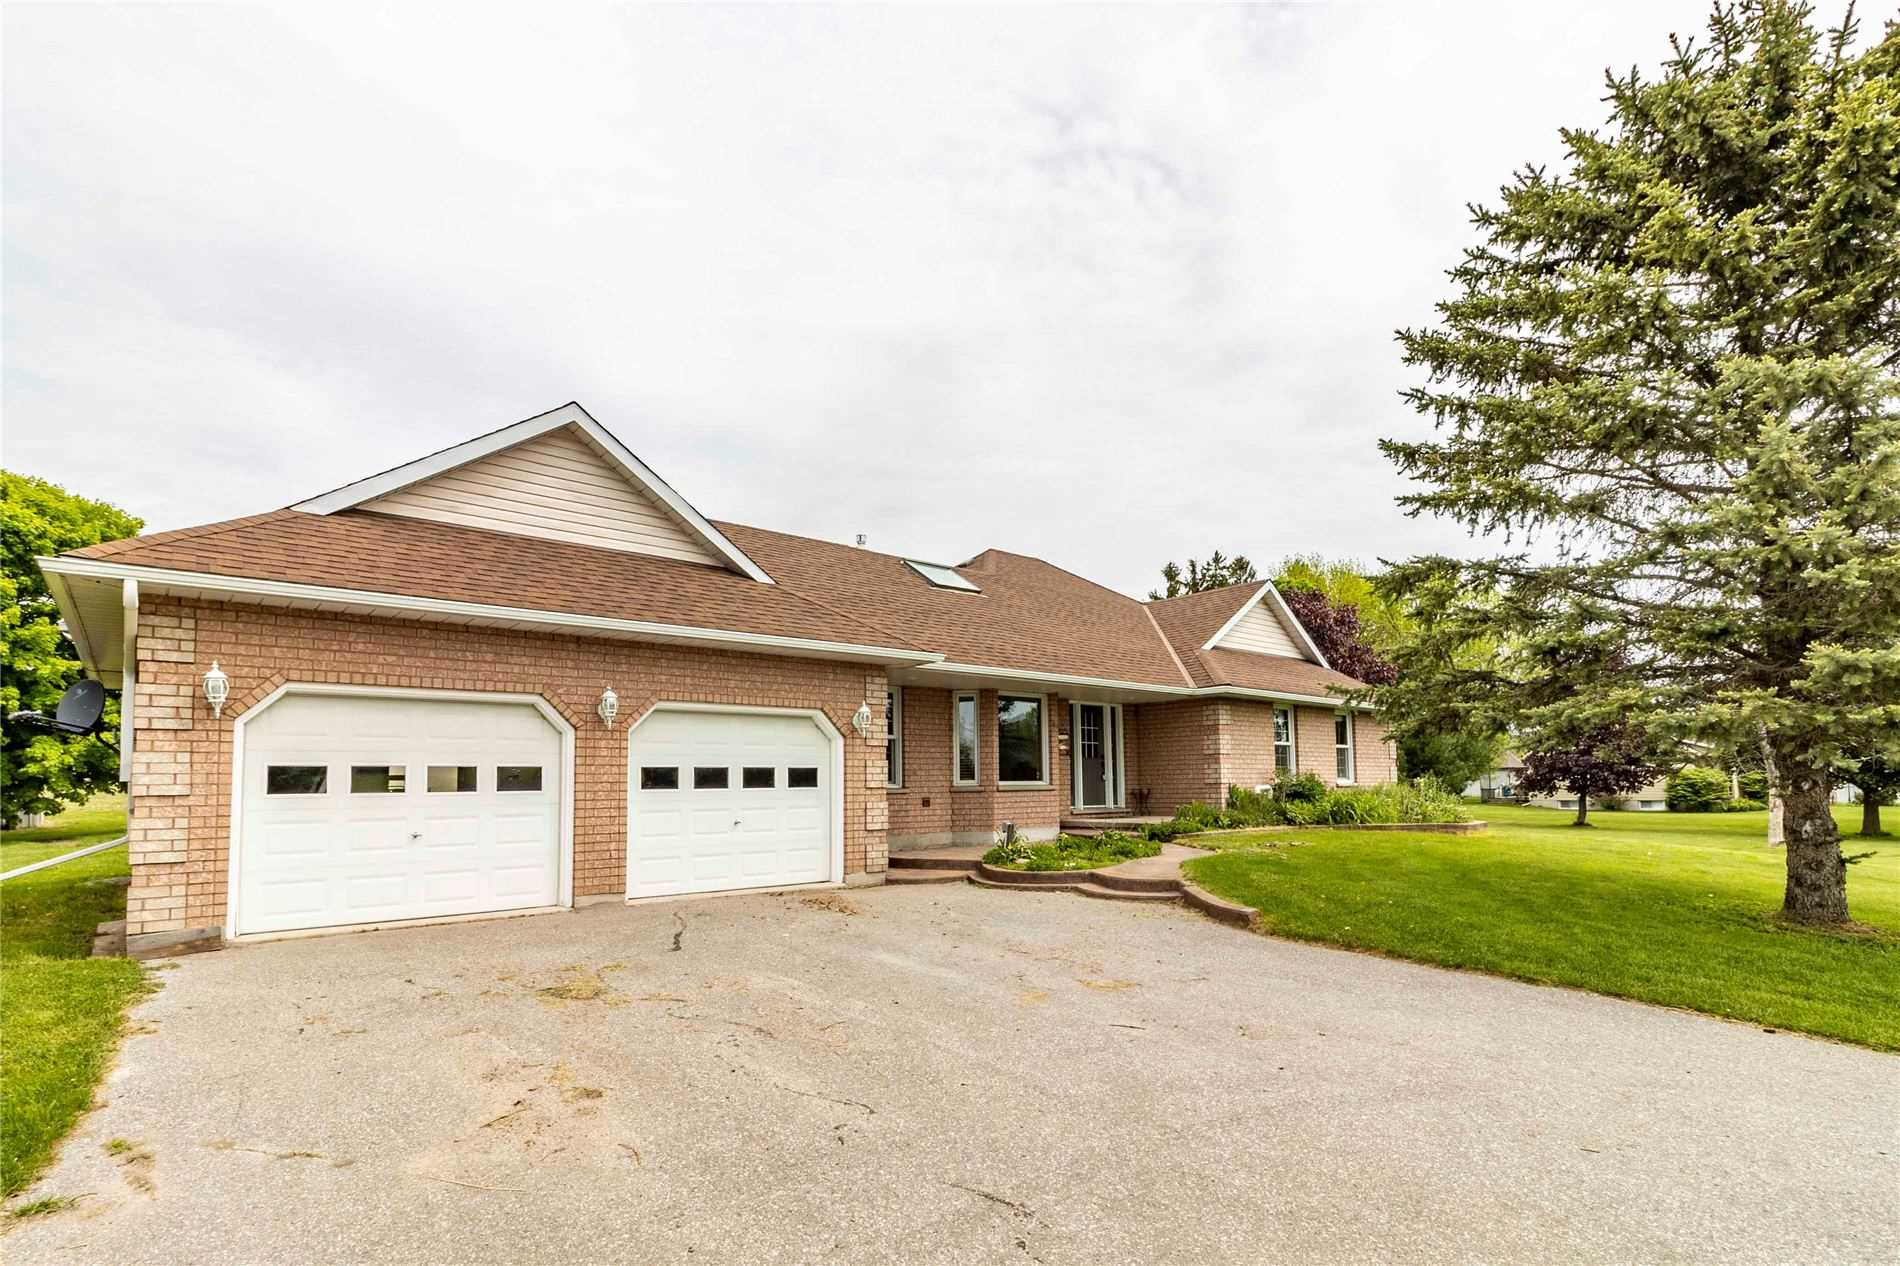 pictures of house for sale MLS: X4779520 located at 7354 Dale Rd, Hamilton Township K9A4J7